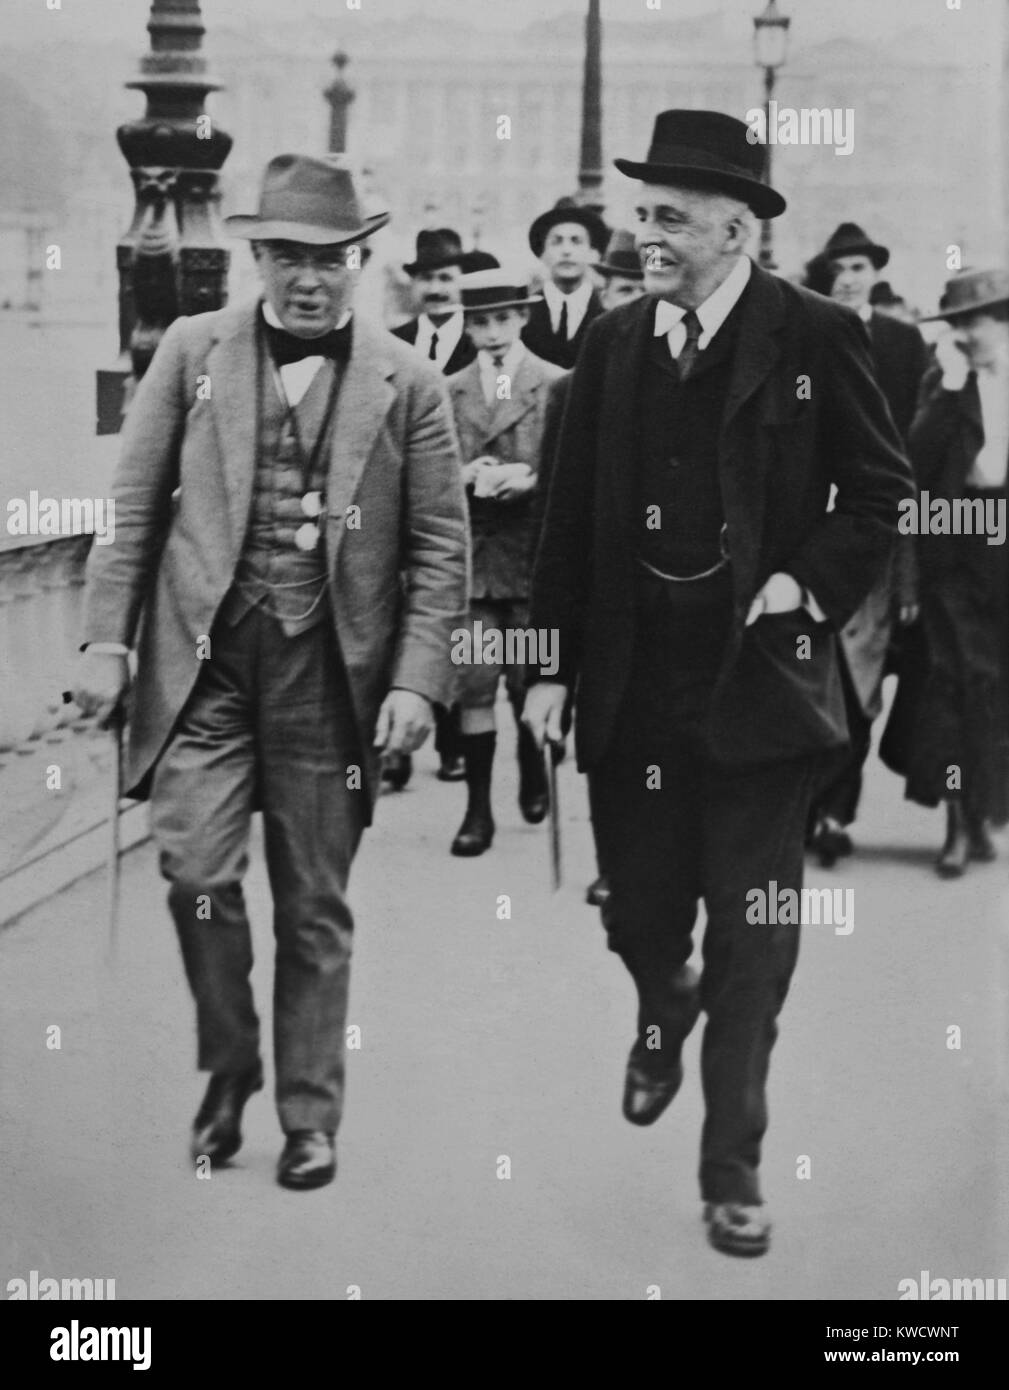 British Prime Minister David Lloyd George and Foreign Minister Arthur Balfour in Paris, July 1917. They were attending - Stock Image